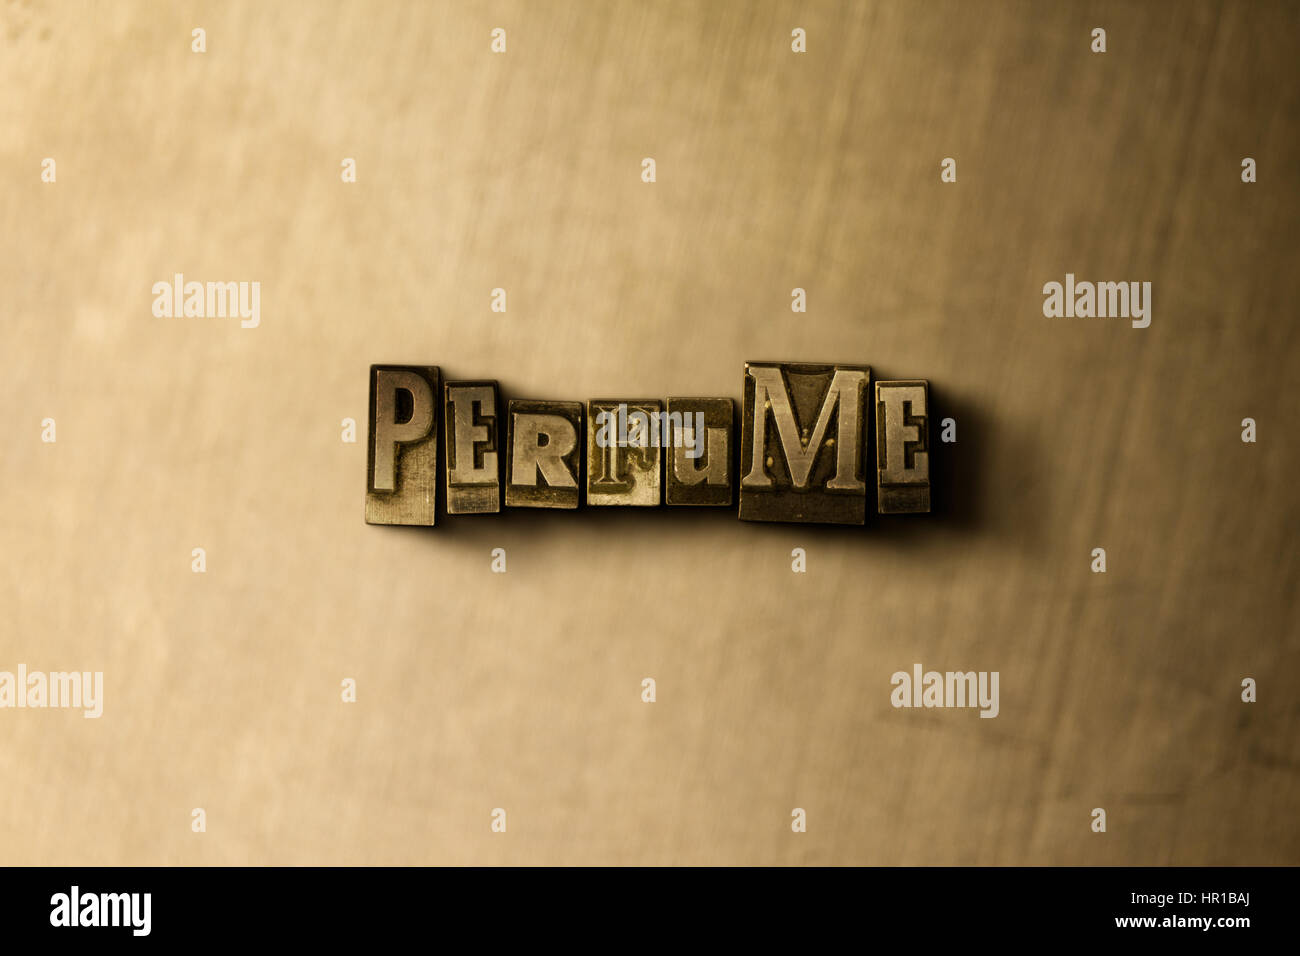 PERFUME - close-up of grungy vintage typeset word on metal backdrop. Royalty free stock - 3D rendered stock image. - Stock Image